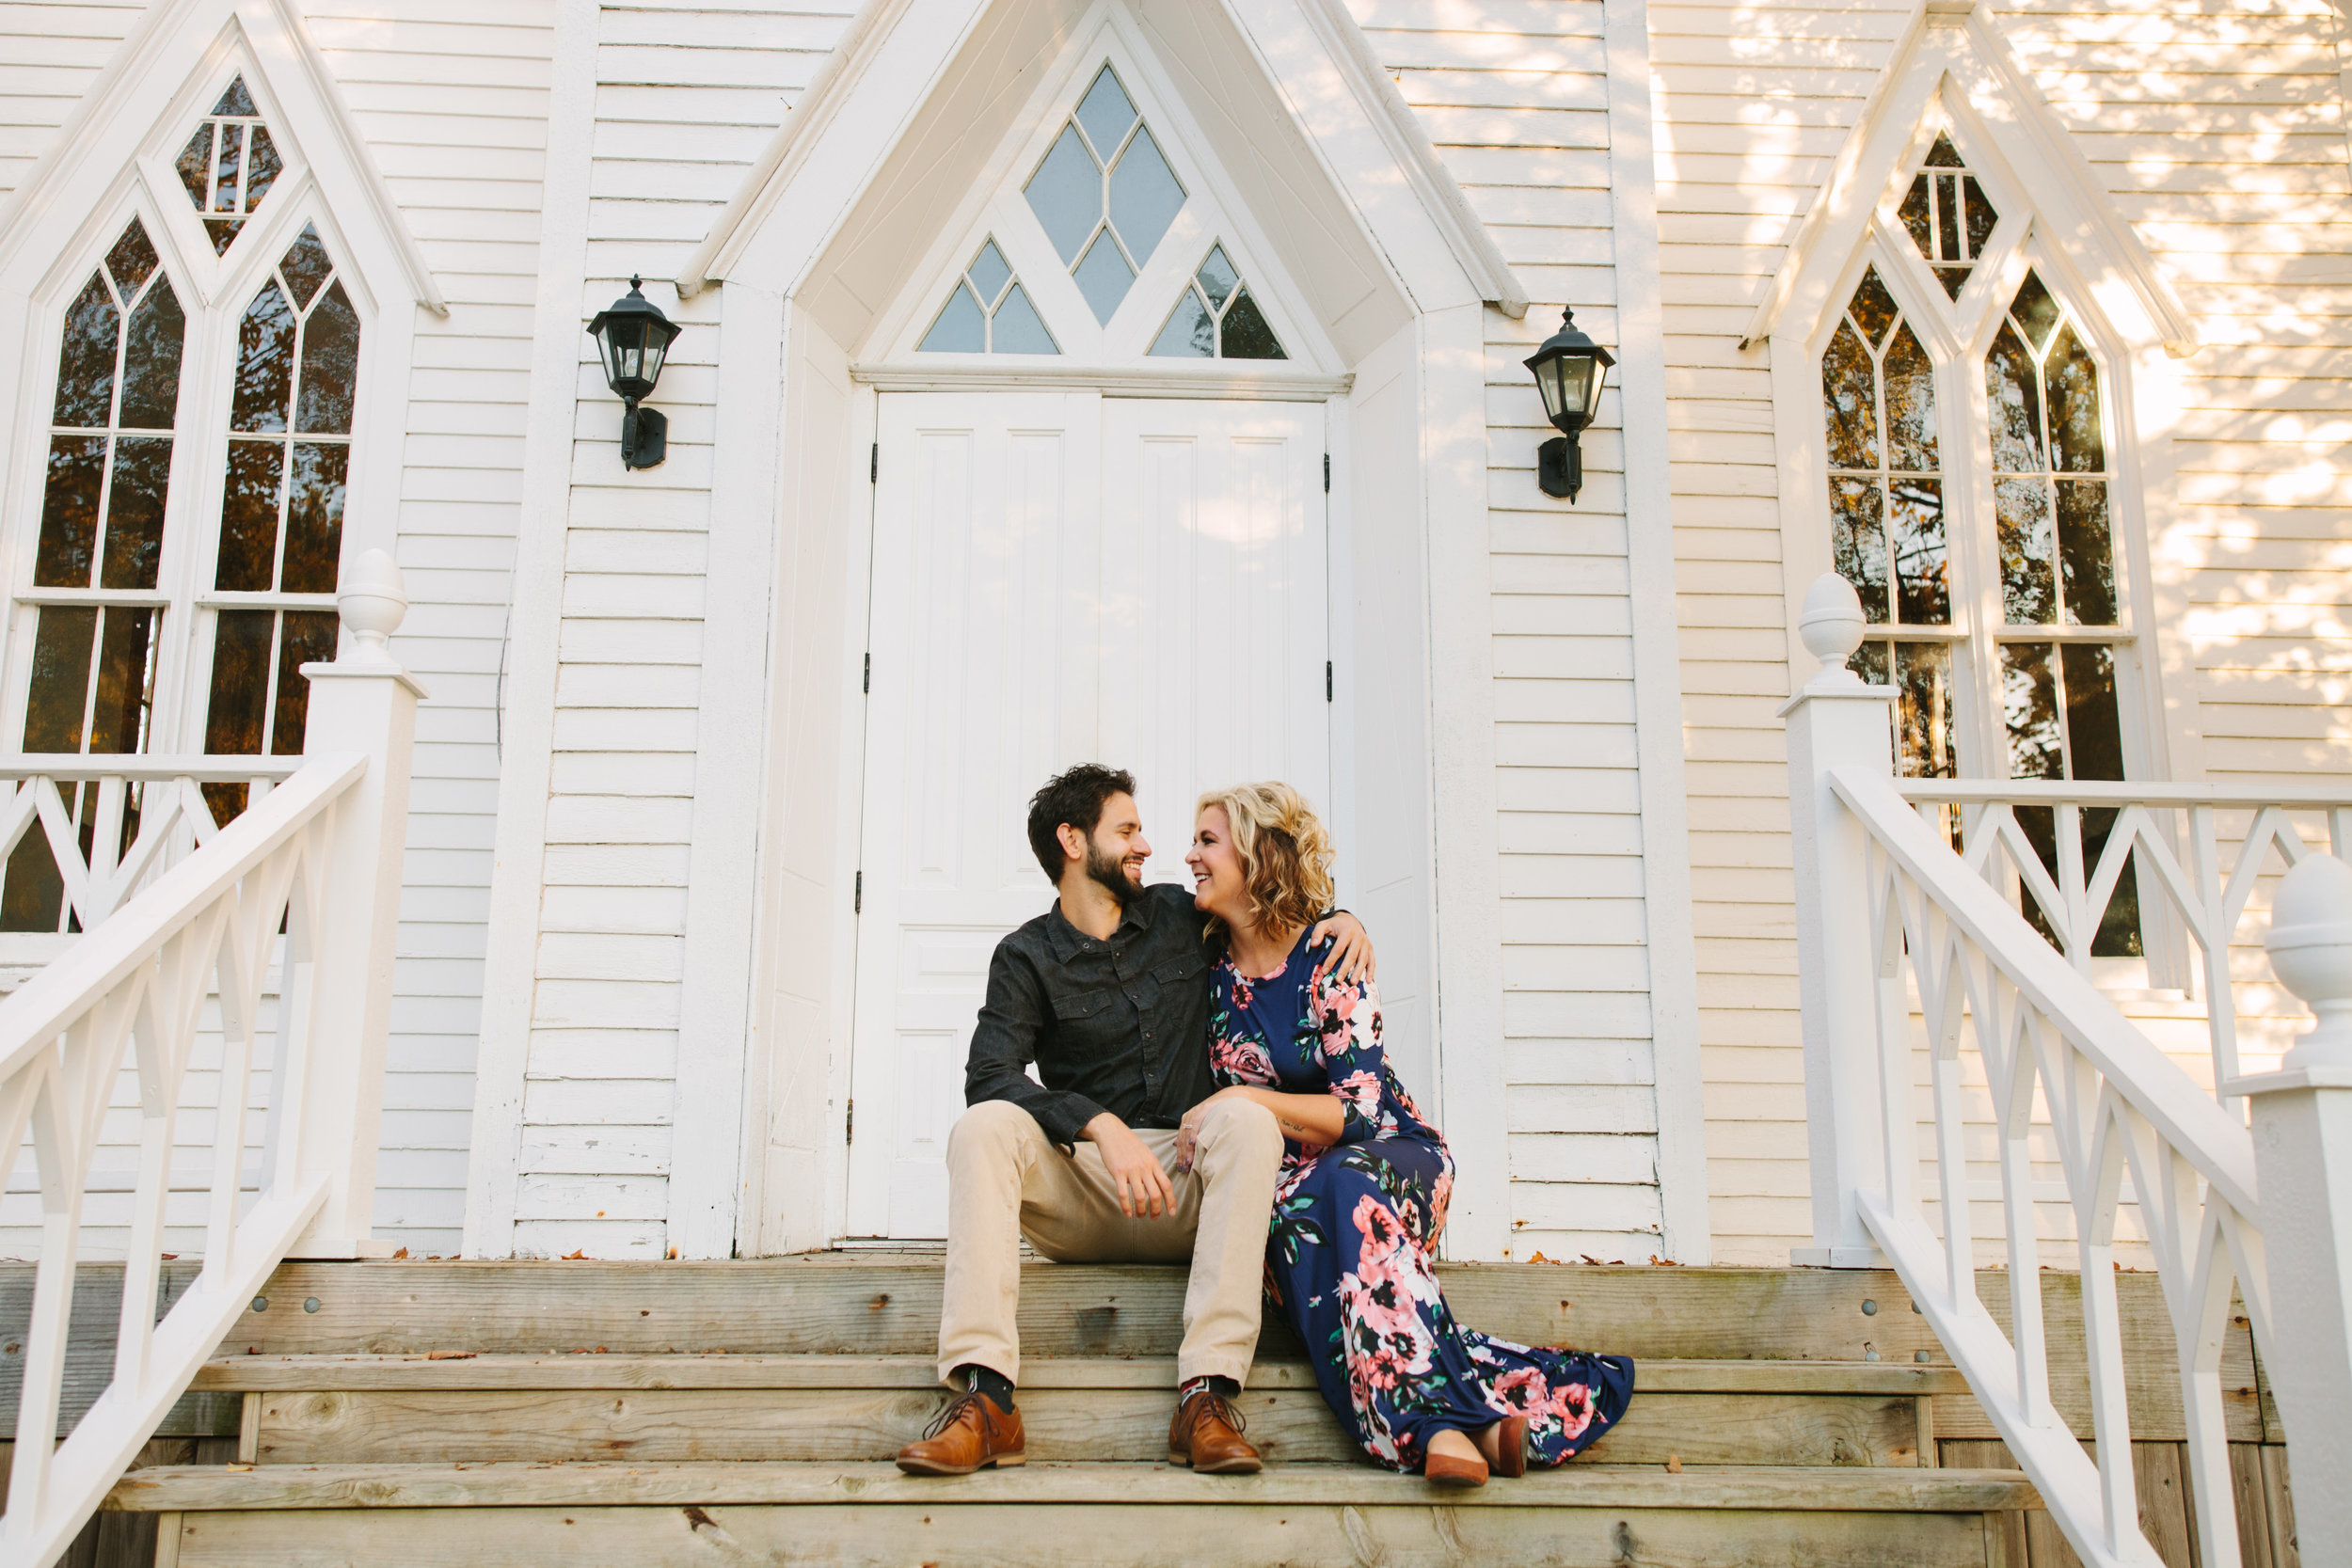 charltonpark_engagementsession_grandrapidsphotographer_grandrapids_hastings_michiganwedding_fallengagement_fallwedding_jdarlingphoto_jessicadarling_westmichiganphotographer_wedding_fall_rusticwedding  017.jpg